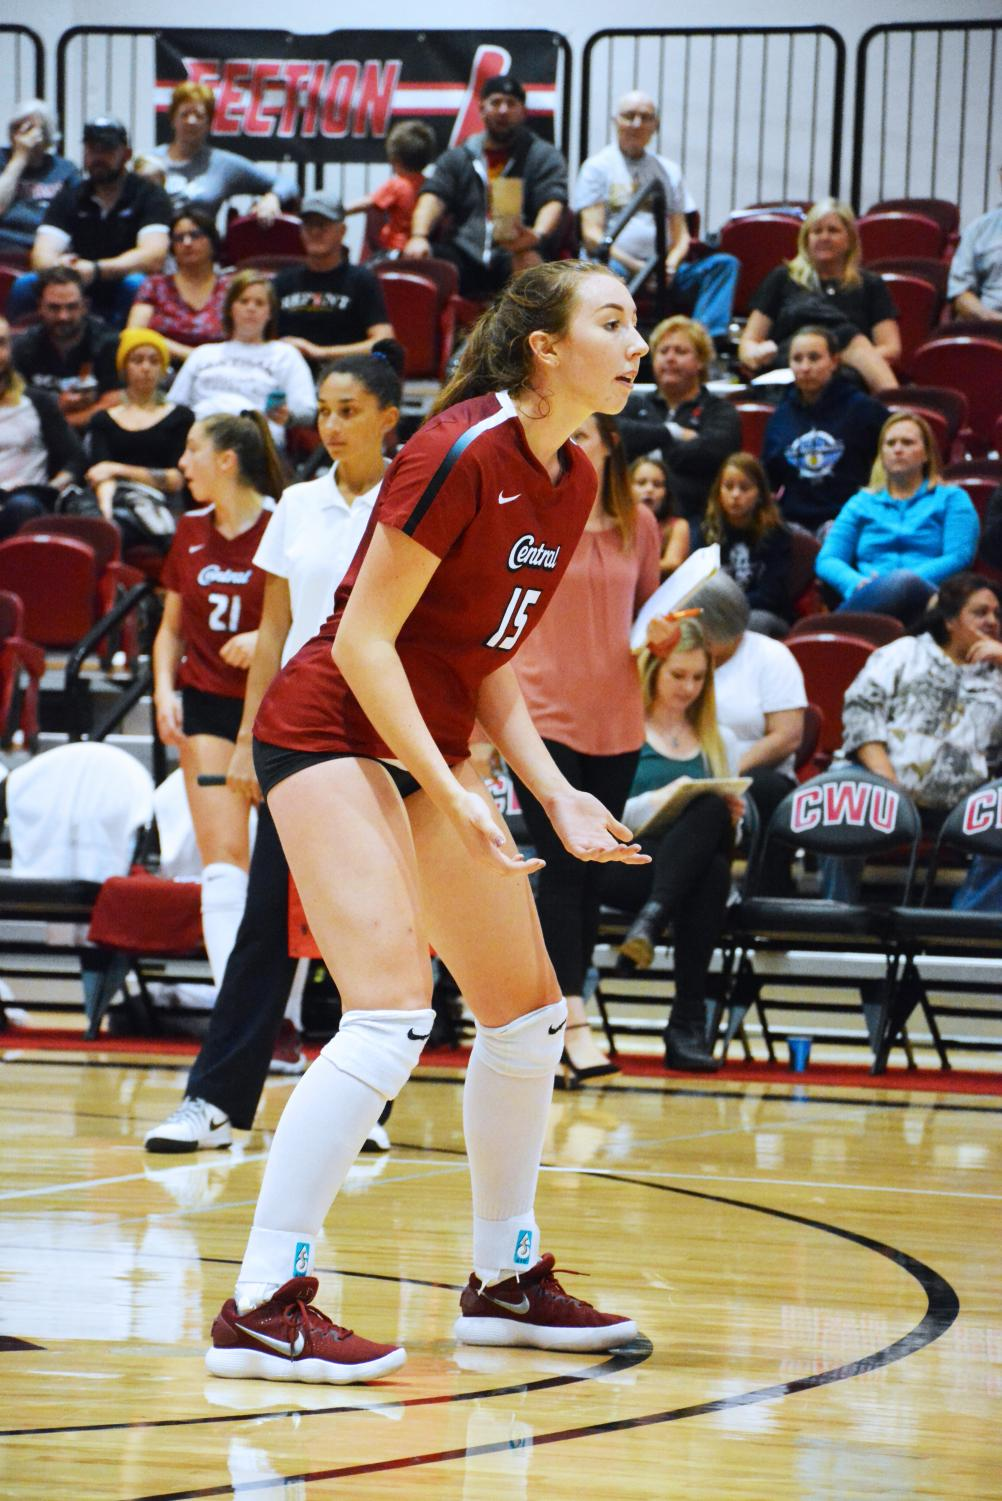 Freshman outside hitter Makala Swart stands at the ready during a home game.